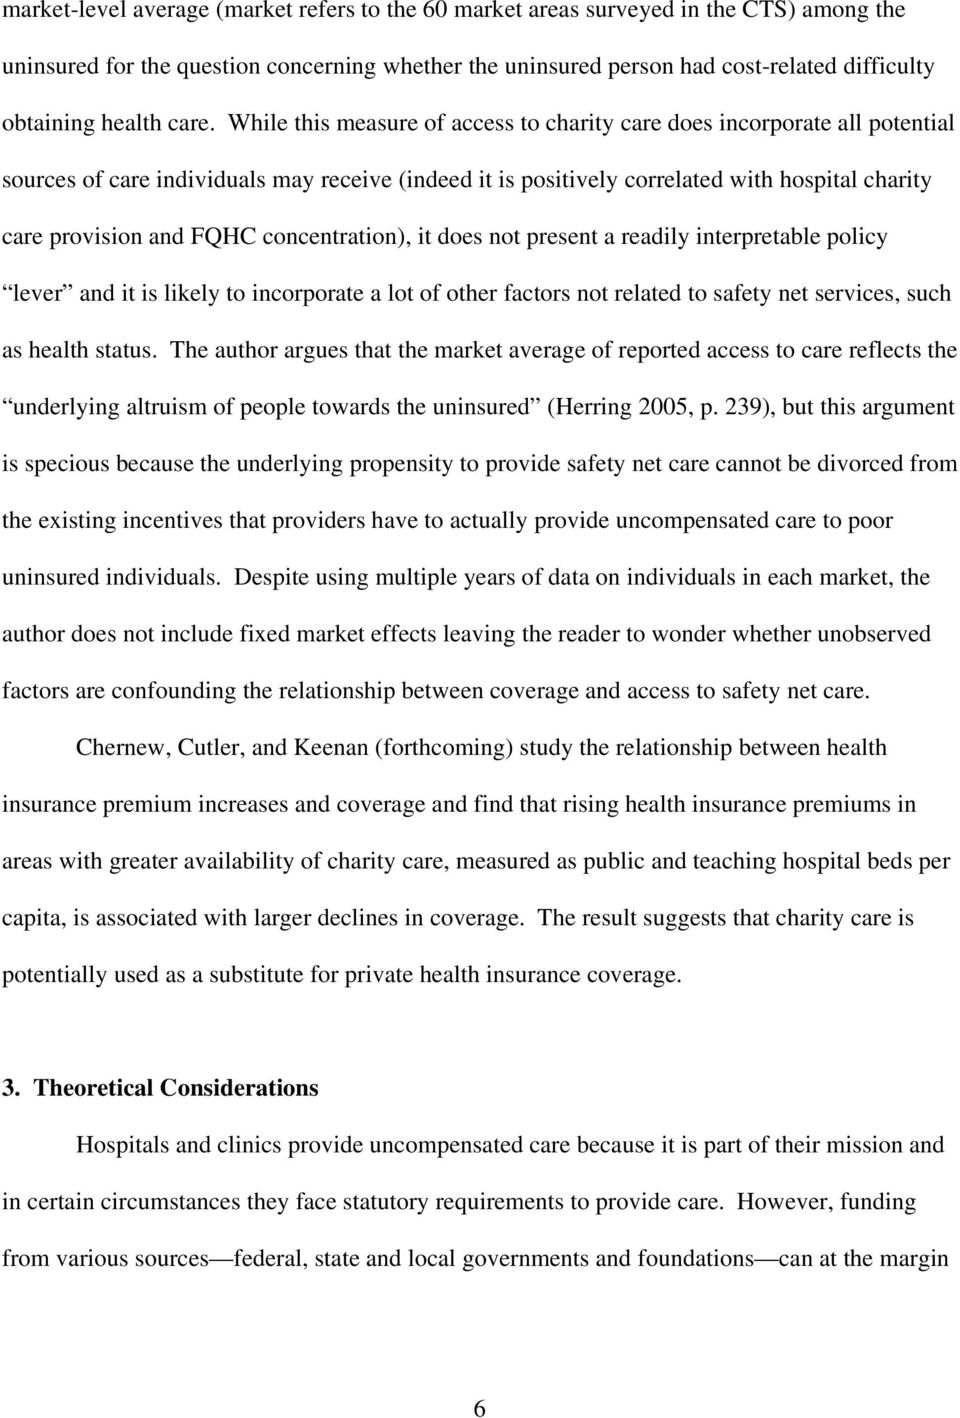 While this measure of access to charity care does incorporate all potential sources of care individuals may receive (indeed it is positively correlated with hospital charity care provision and FQHC